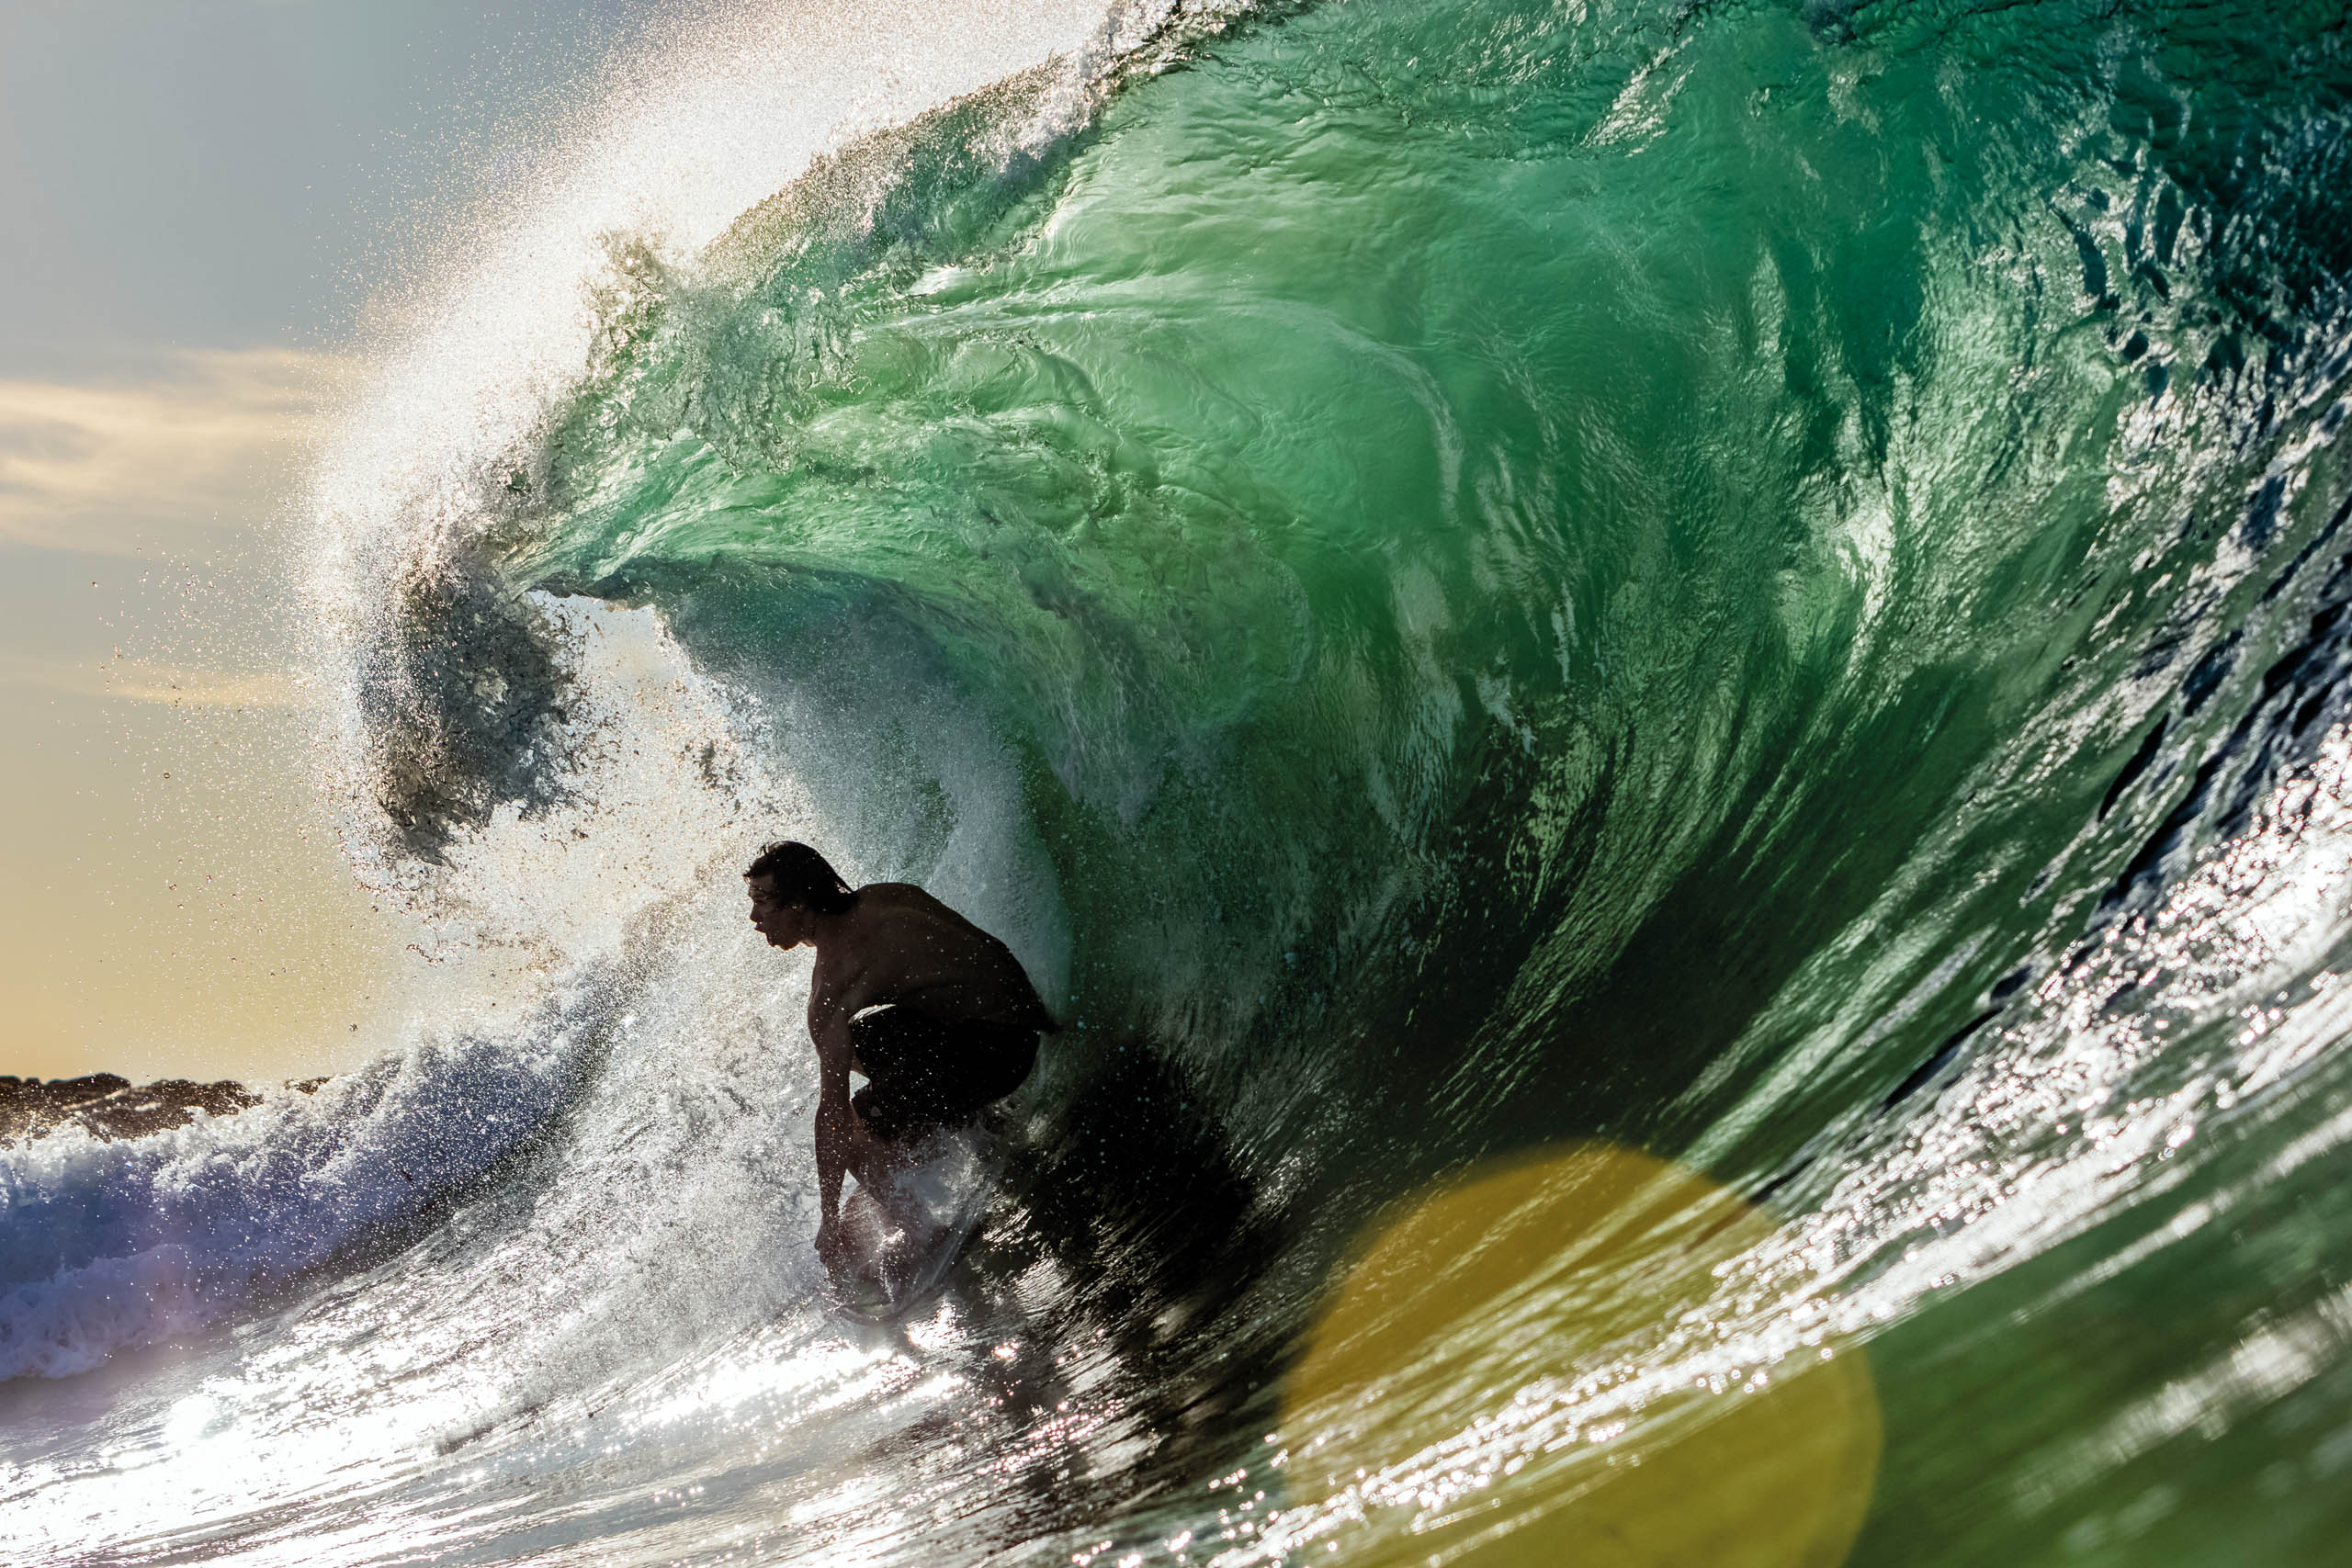 (Pictured) Brad Domke delivers his mute message at Wedge (Photo by Larry Beard)